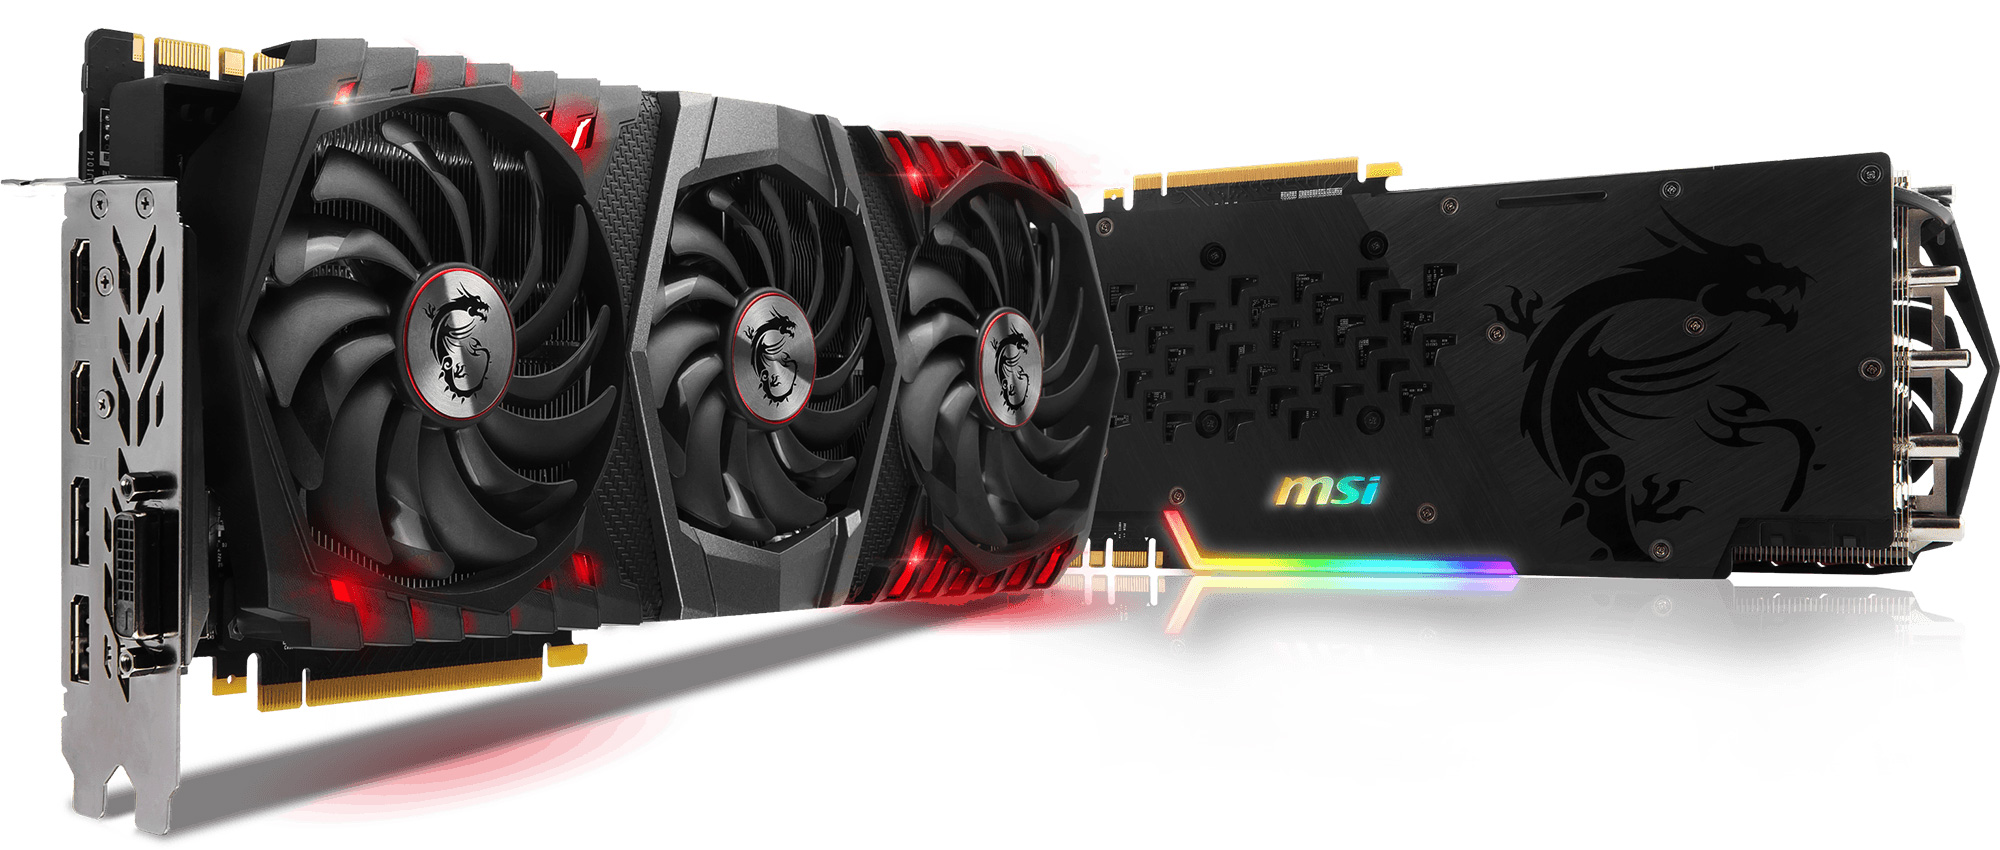 Led effects MSI Gaming App